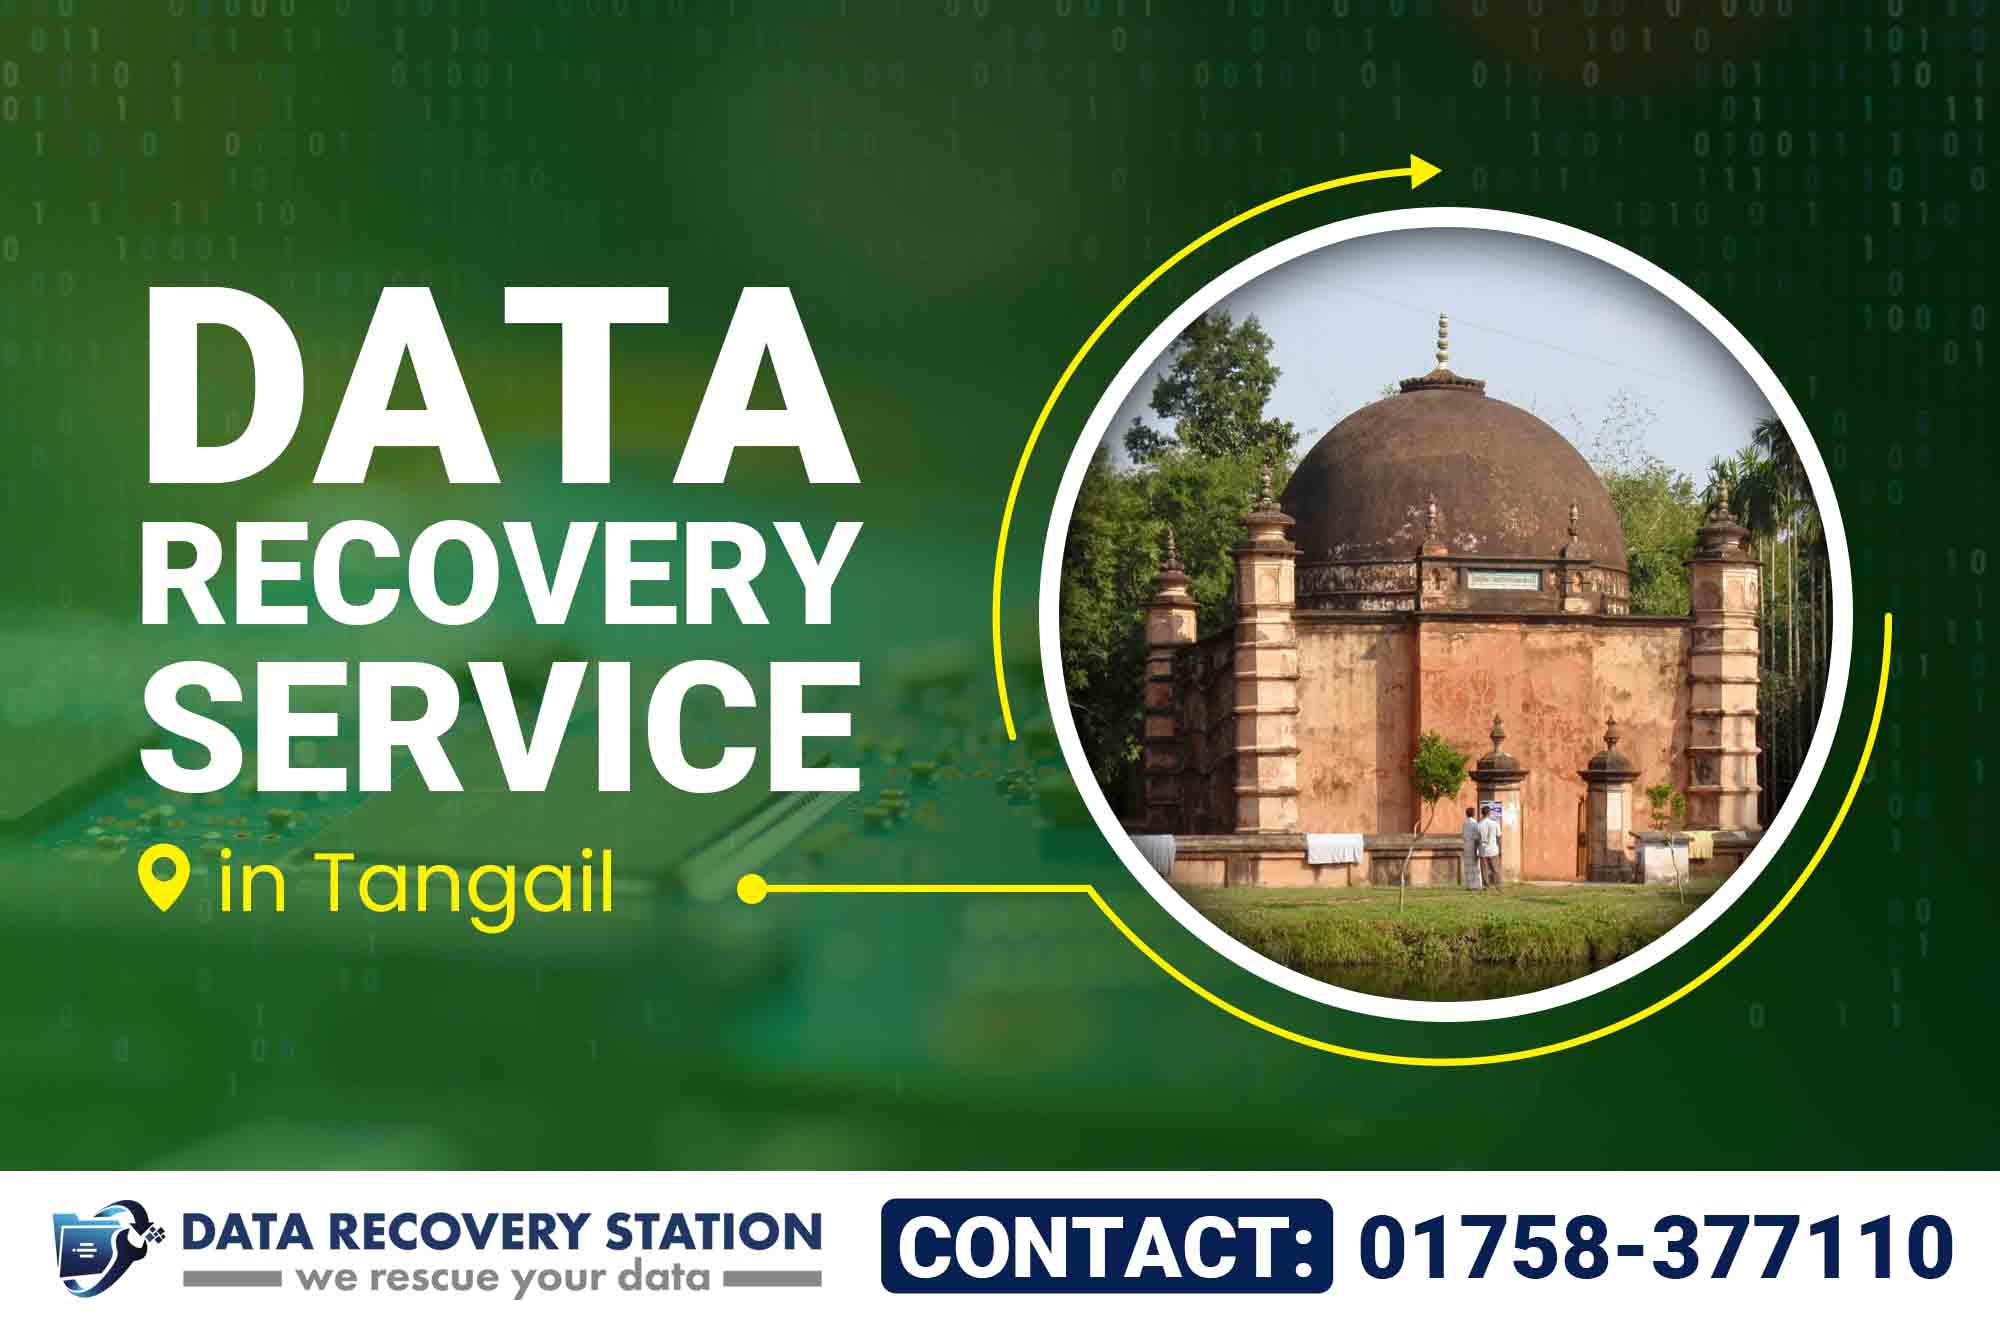 Data Recovery Service in Tangail